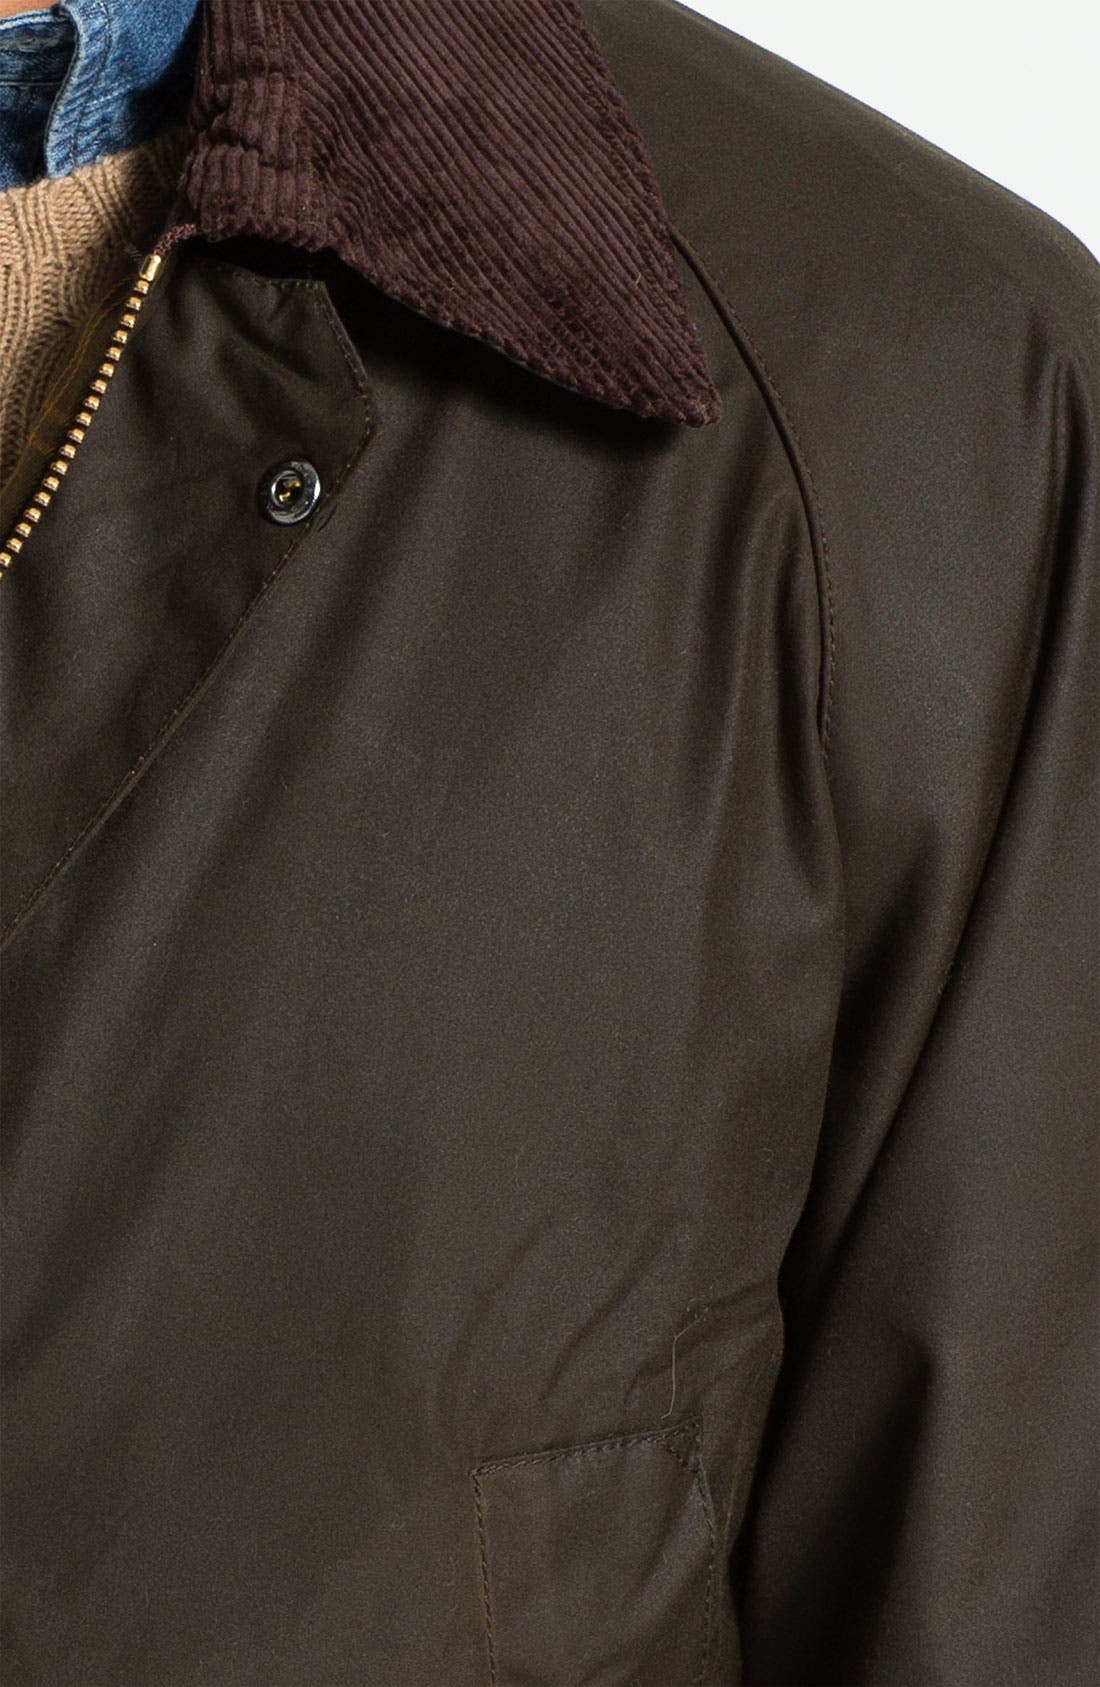 'Bedale' Relaxed Fit Waterproof Waxed Cotton Jacket,                             Alternate thumbnail 3, color,                             301